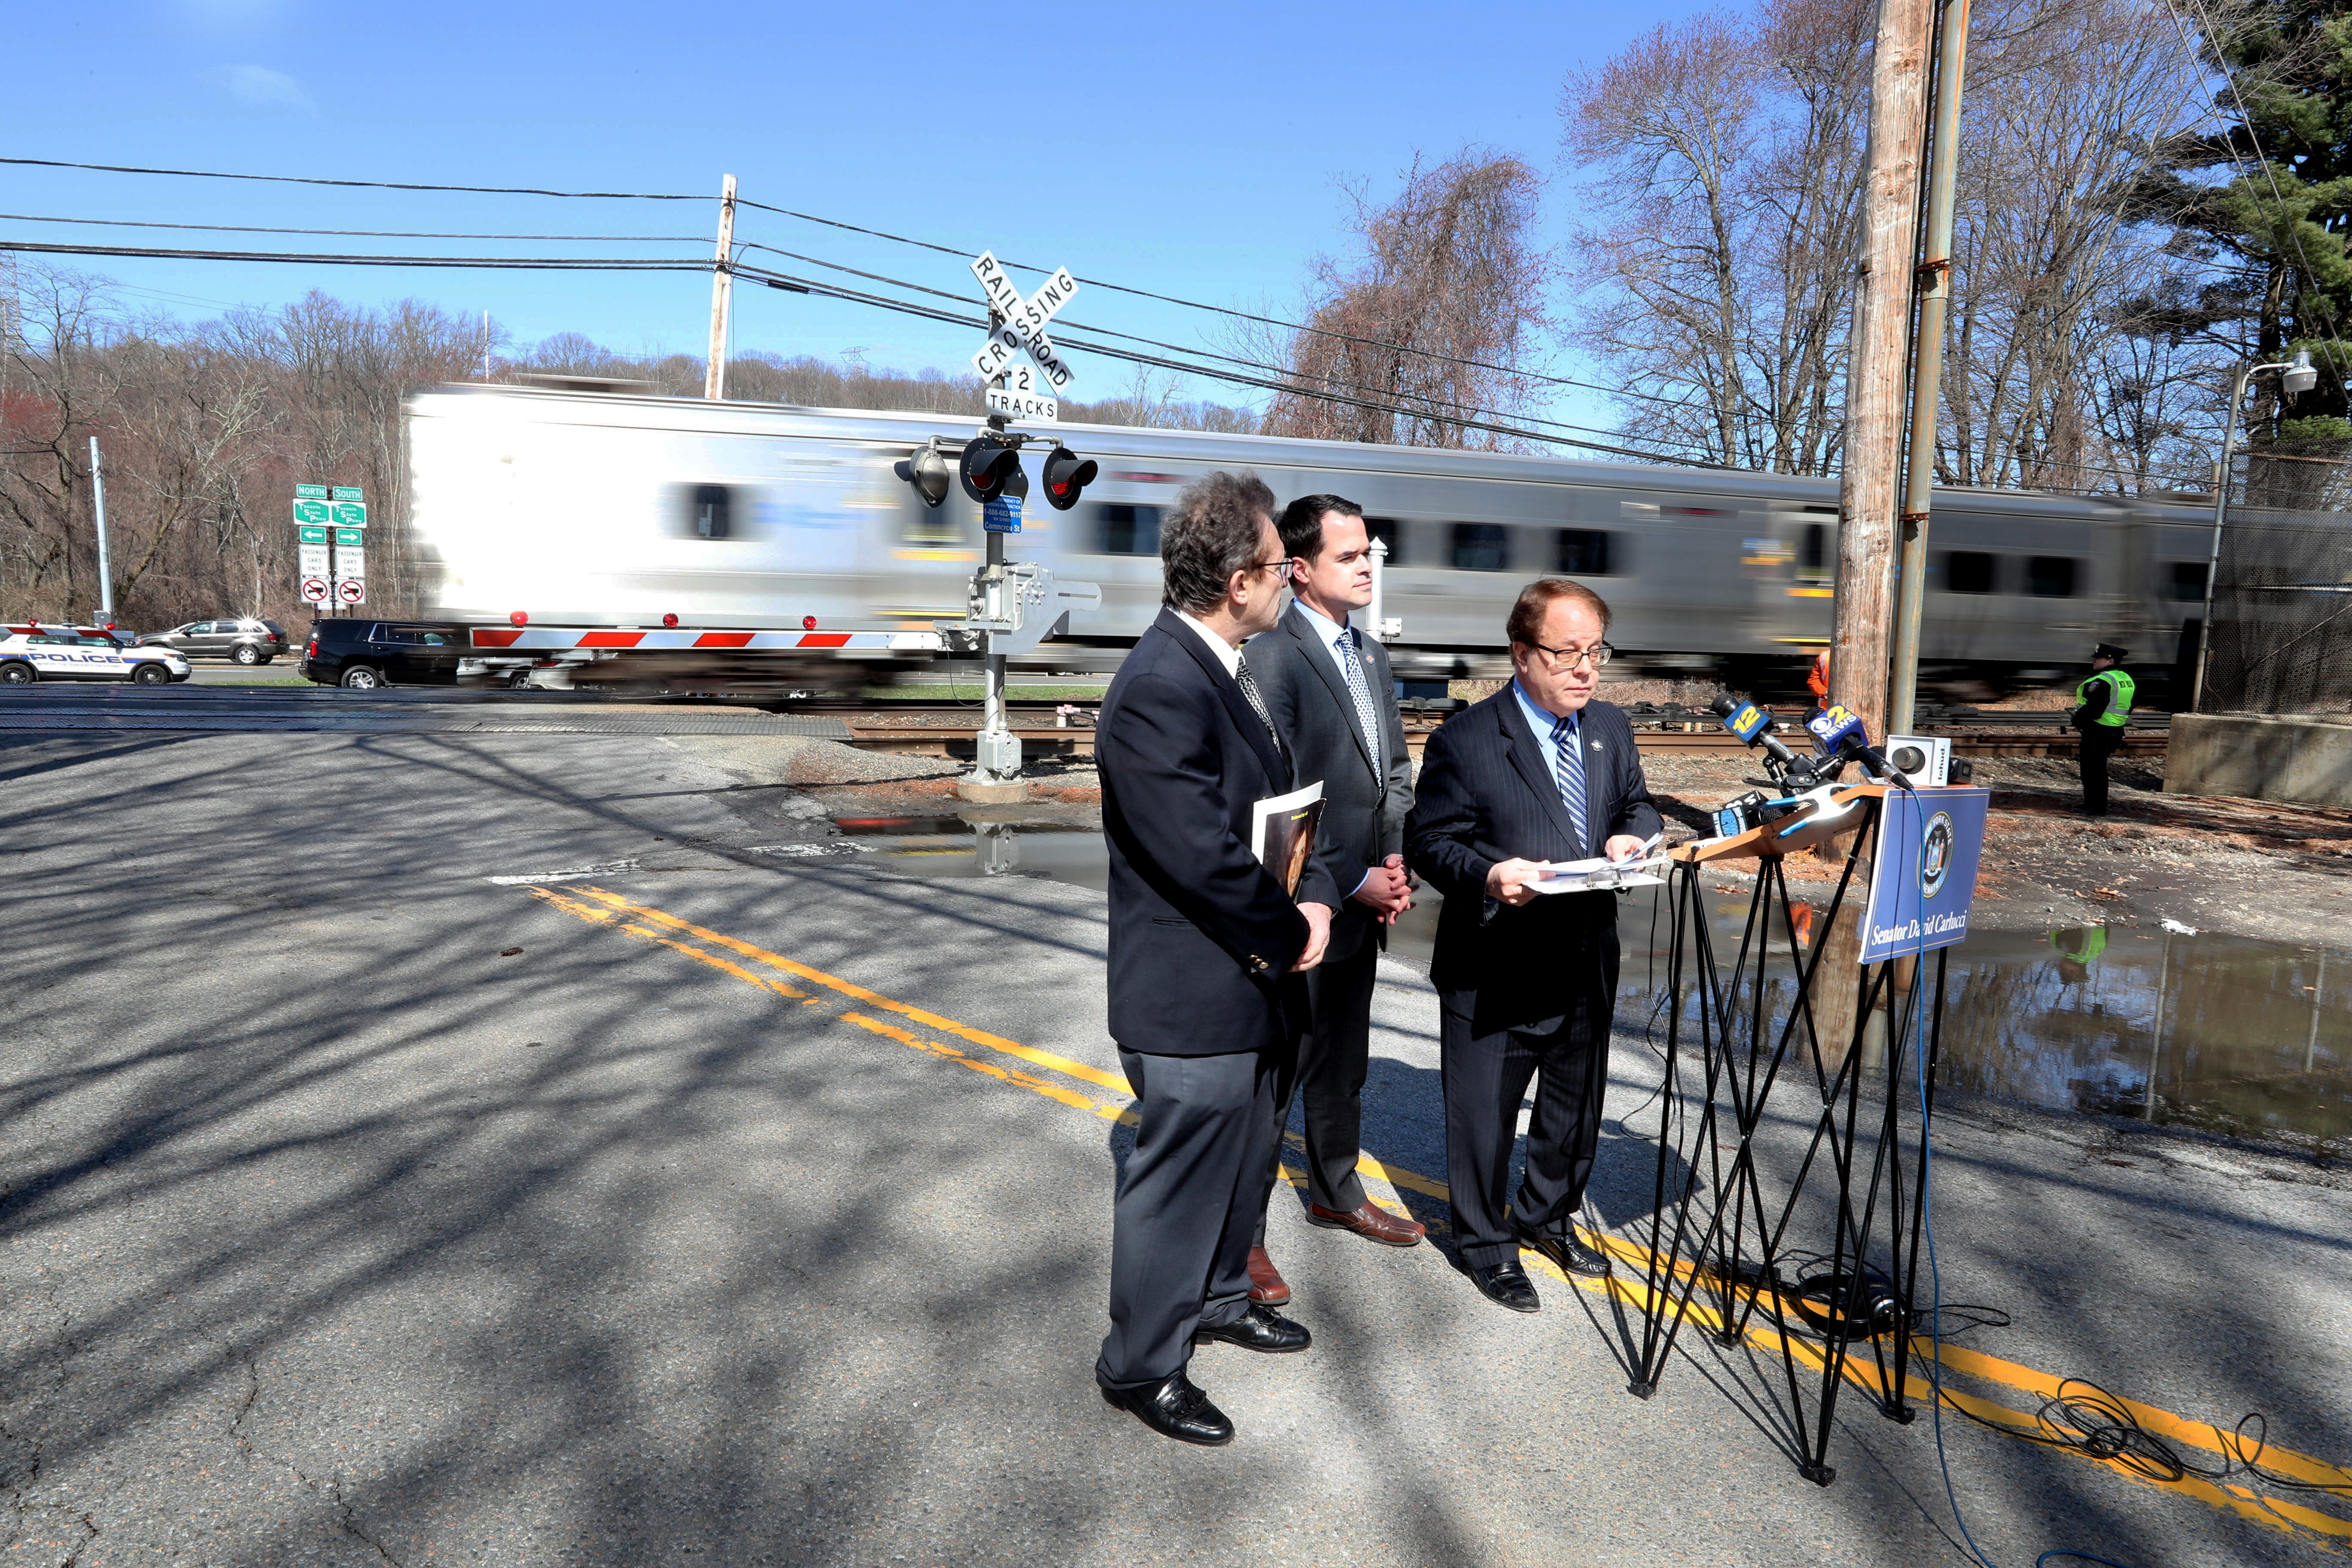 Video: Lawmakers call on DOT to improve rail crossing safety